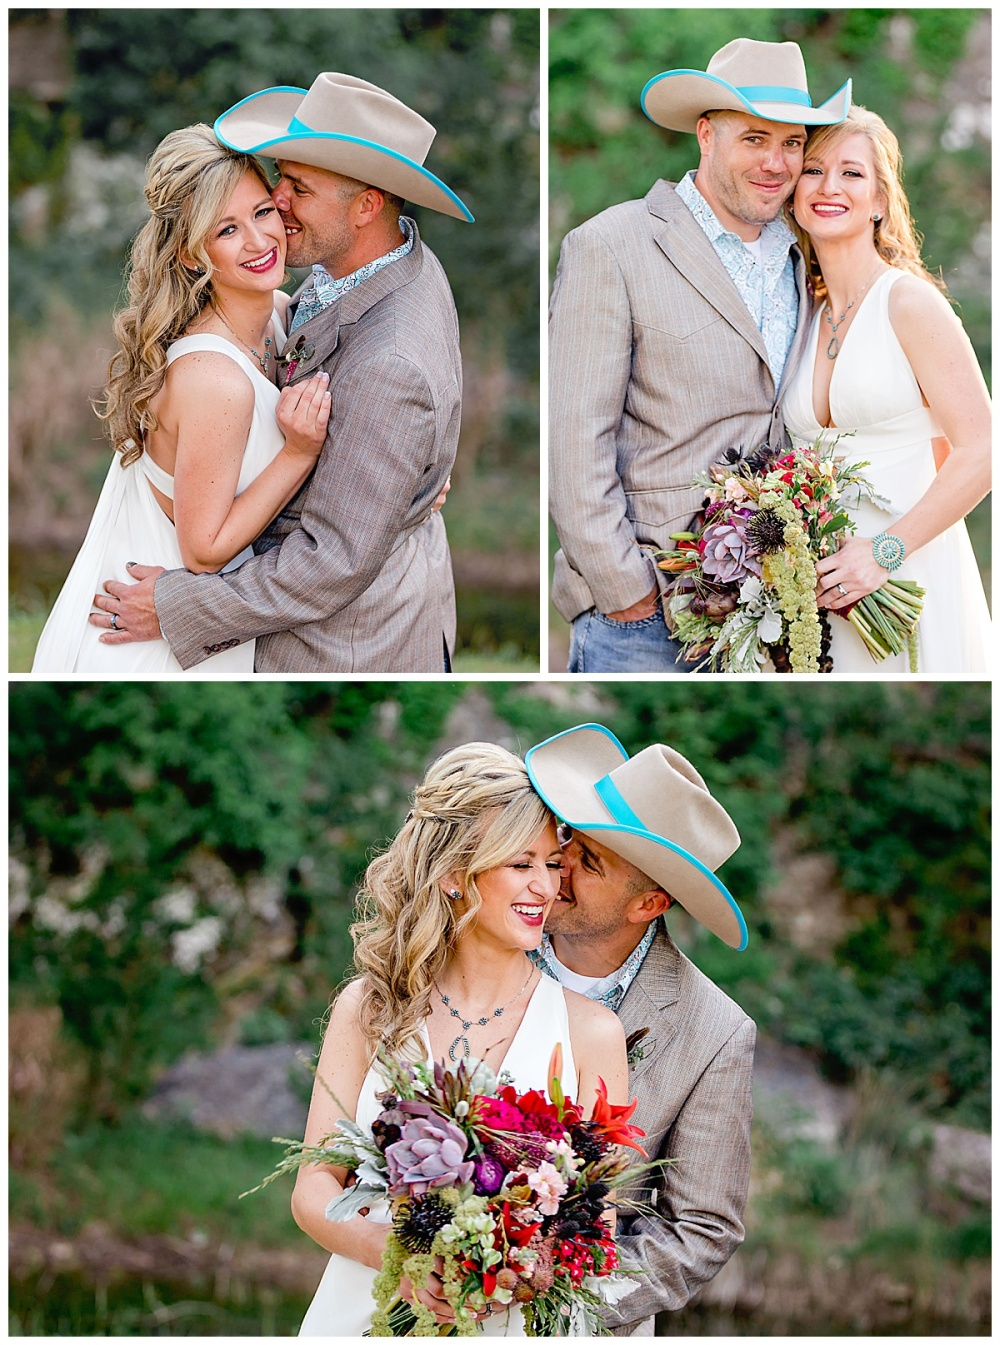 Eagle-Dancer-Ranch-Boerne-Texas-Wedding-Party-Barn-Carly-Barton-Photography_0042.jpg